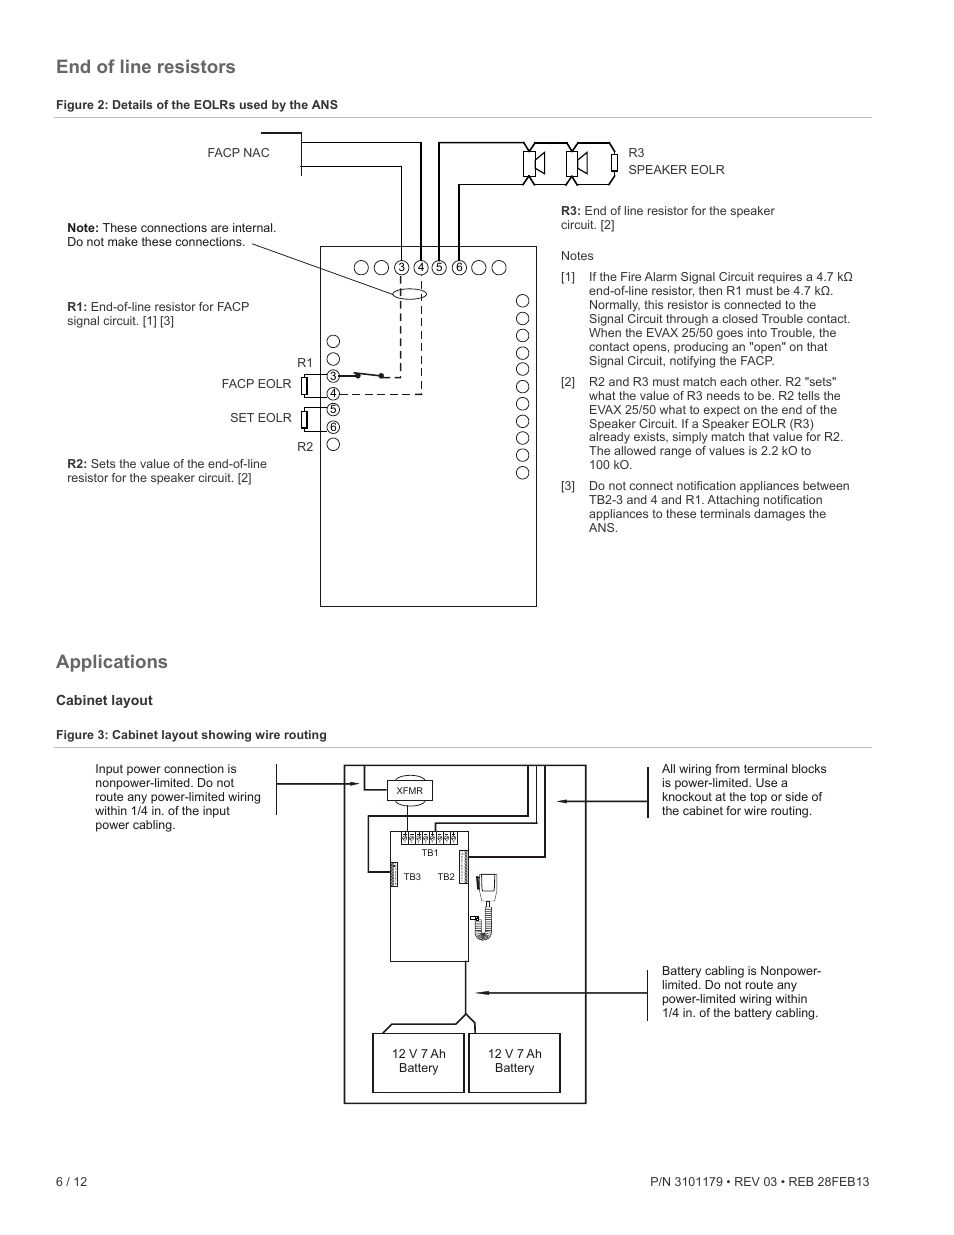 End of line resistors, Applications, Cabinet layout | Edwards Signaling ANS  Audio Notification System User Manual | Page 6 / 12